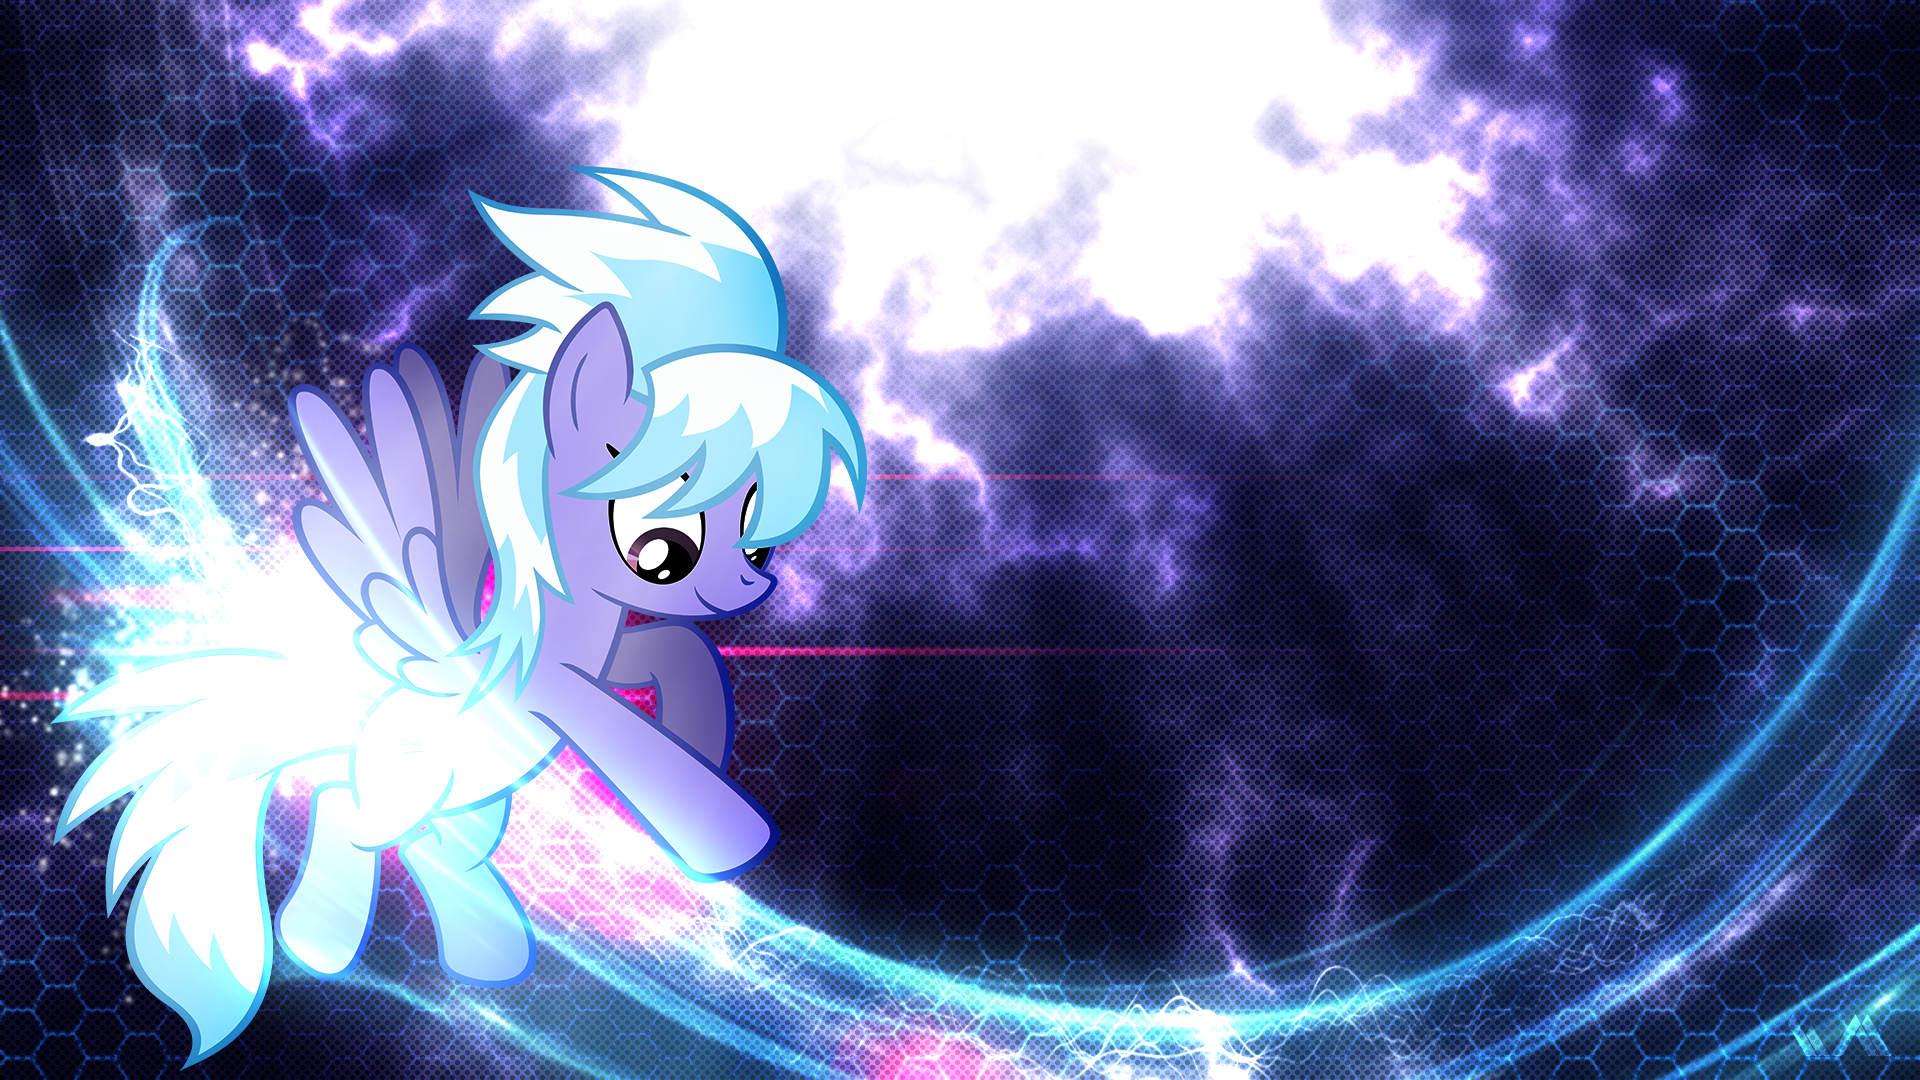 The Chase by MyLittlePinkieDash and WMill